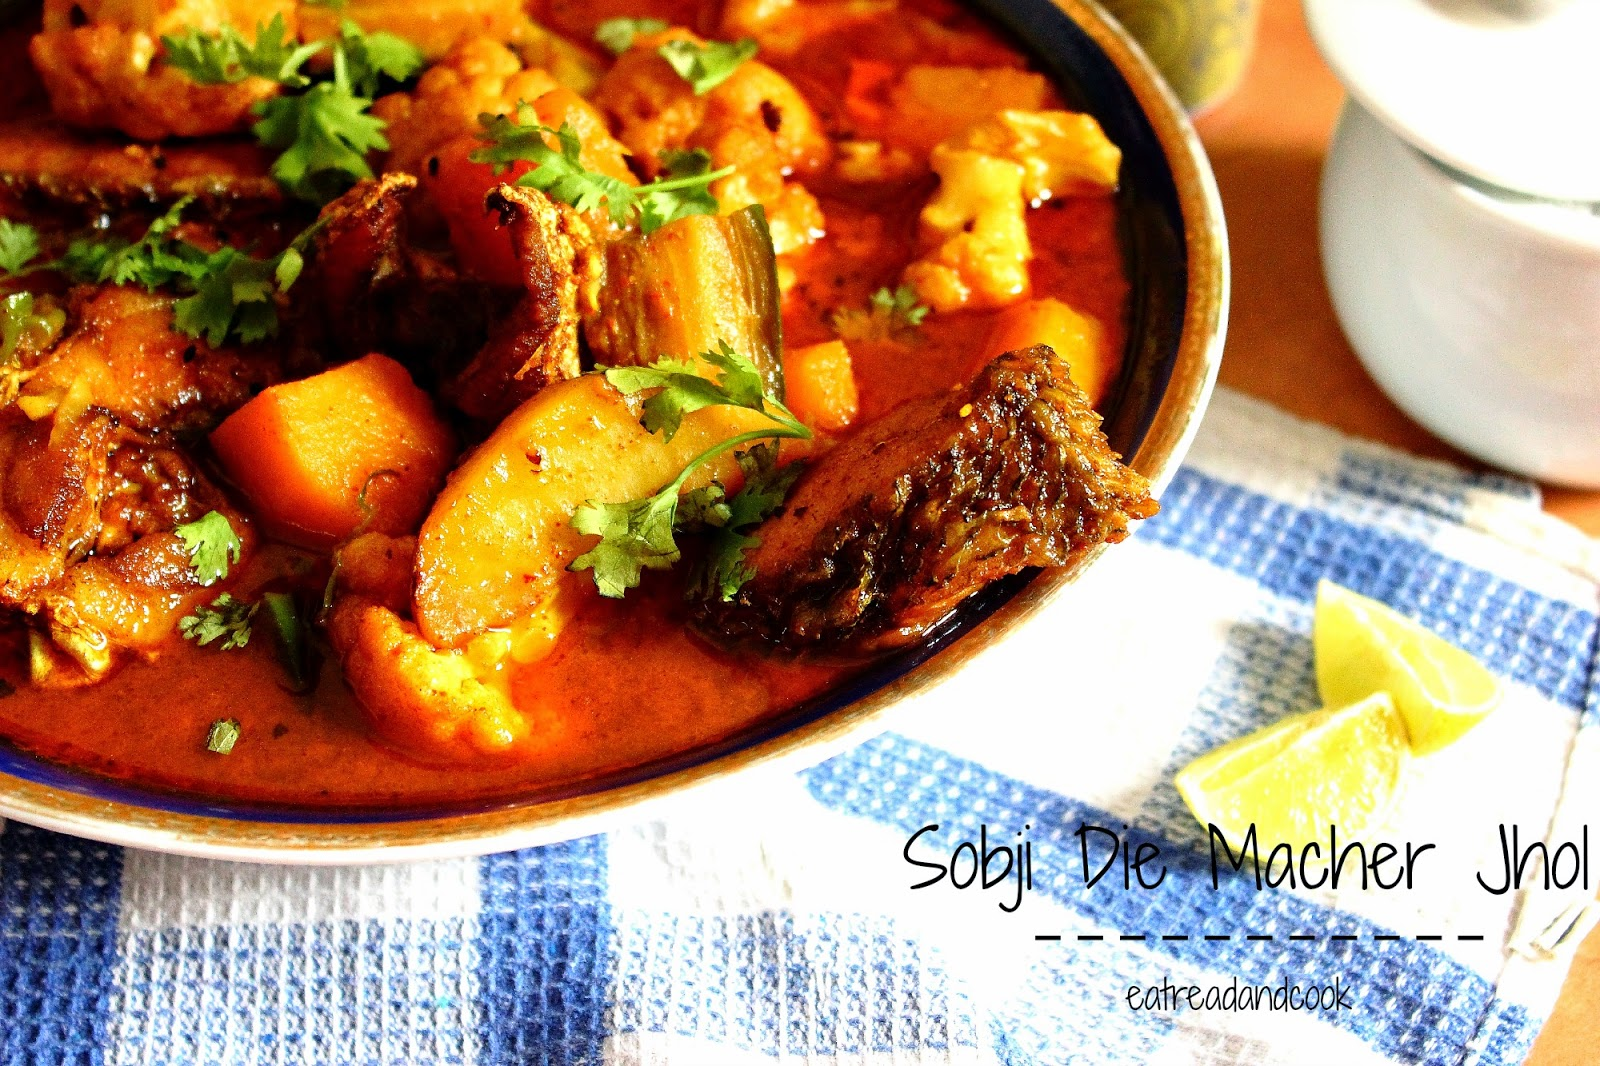 how to cook Sobji Die Macher Jhol